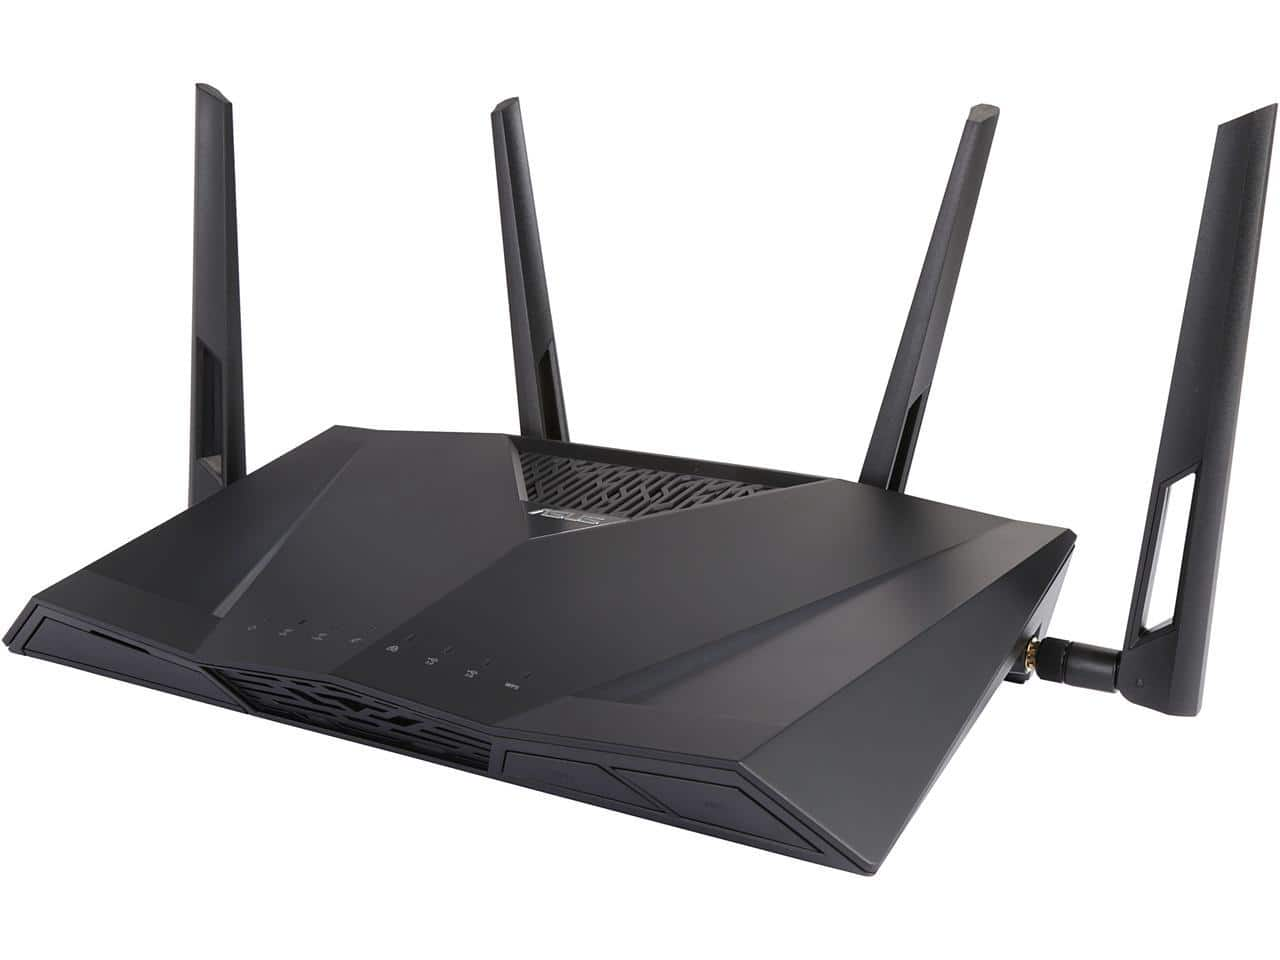 Refurbished Sale: Asus RT-AC3100 AC3100 Dual-Band Wireless Gigabit Router for $111.99 AC, Asus RT-AC66U AC1750 Dual-Band Wireless Gigabit Router for $59.49 AC & More @ Newegg.com